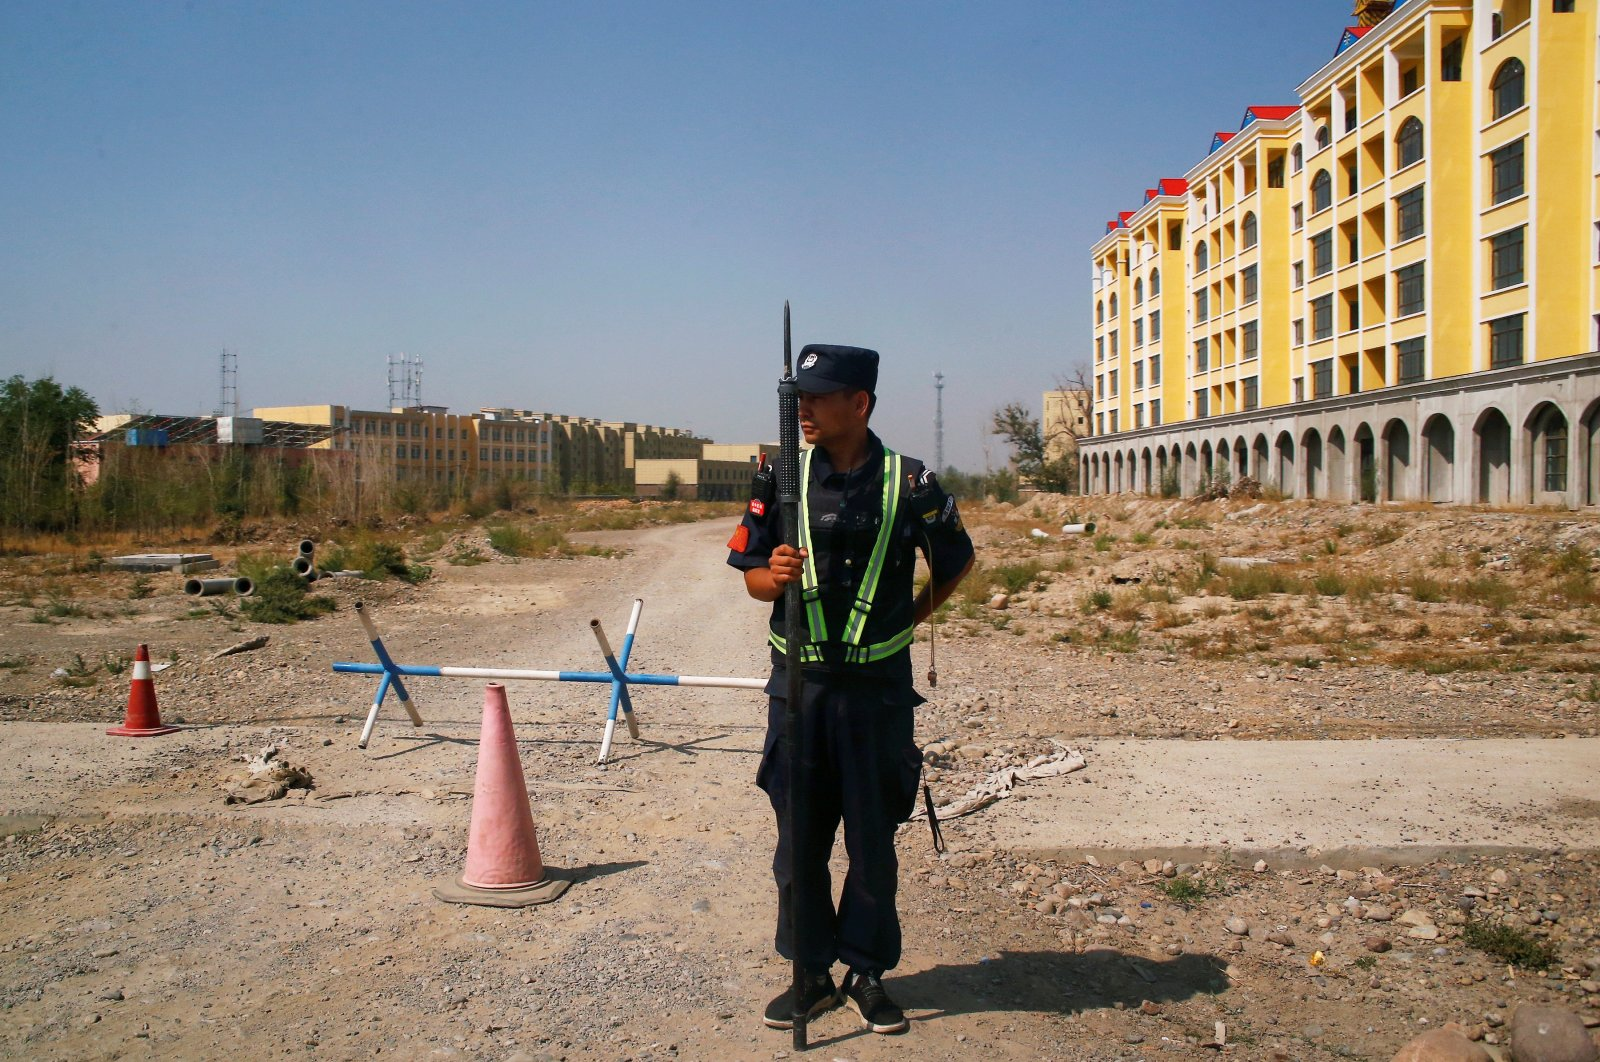 A Chinese police officer takes his position near what is officially known as a vocational education center in Yining, Xinjiang Uighur Autonomous Region, China, Sept. 4, 2018. (Reuters Photo)